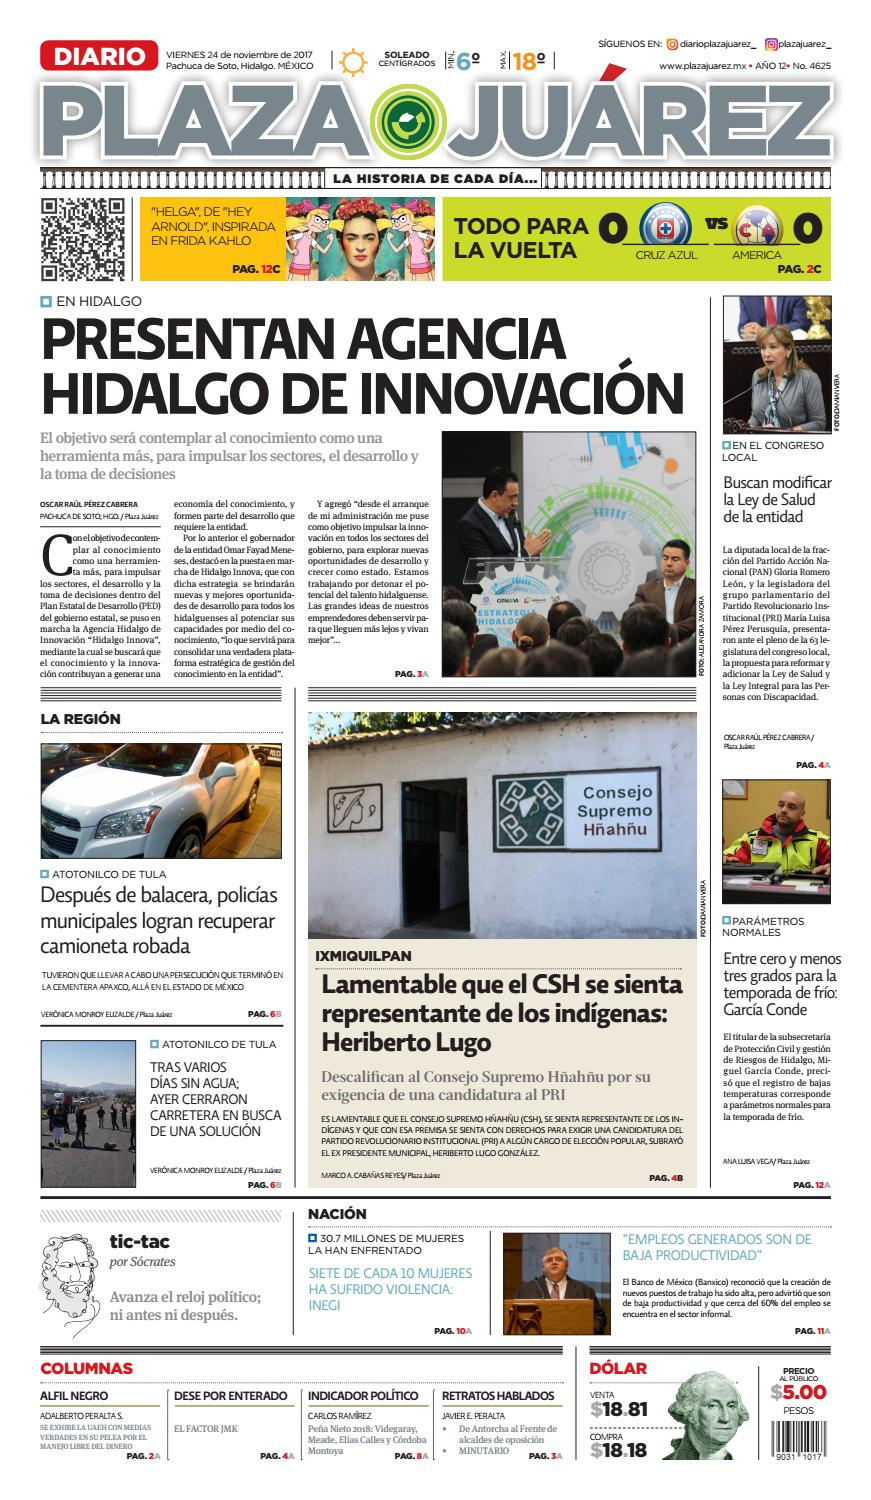 24 11 17 by Diario Plaza Juárez - issuu